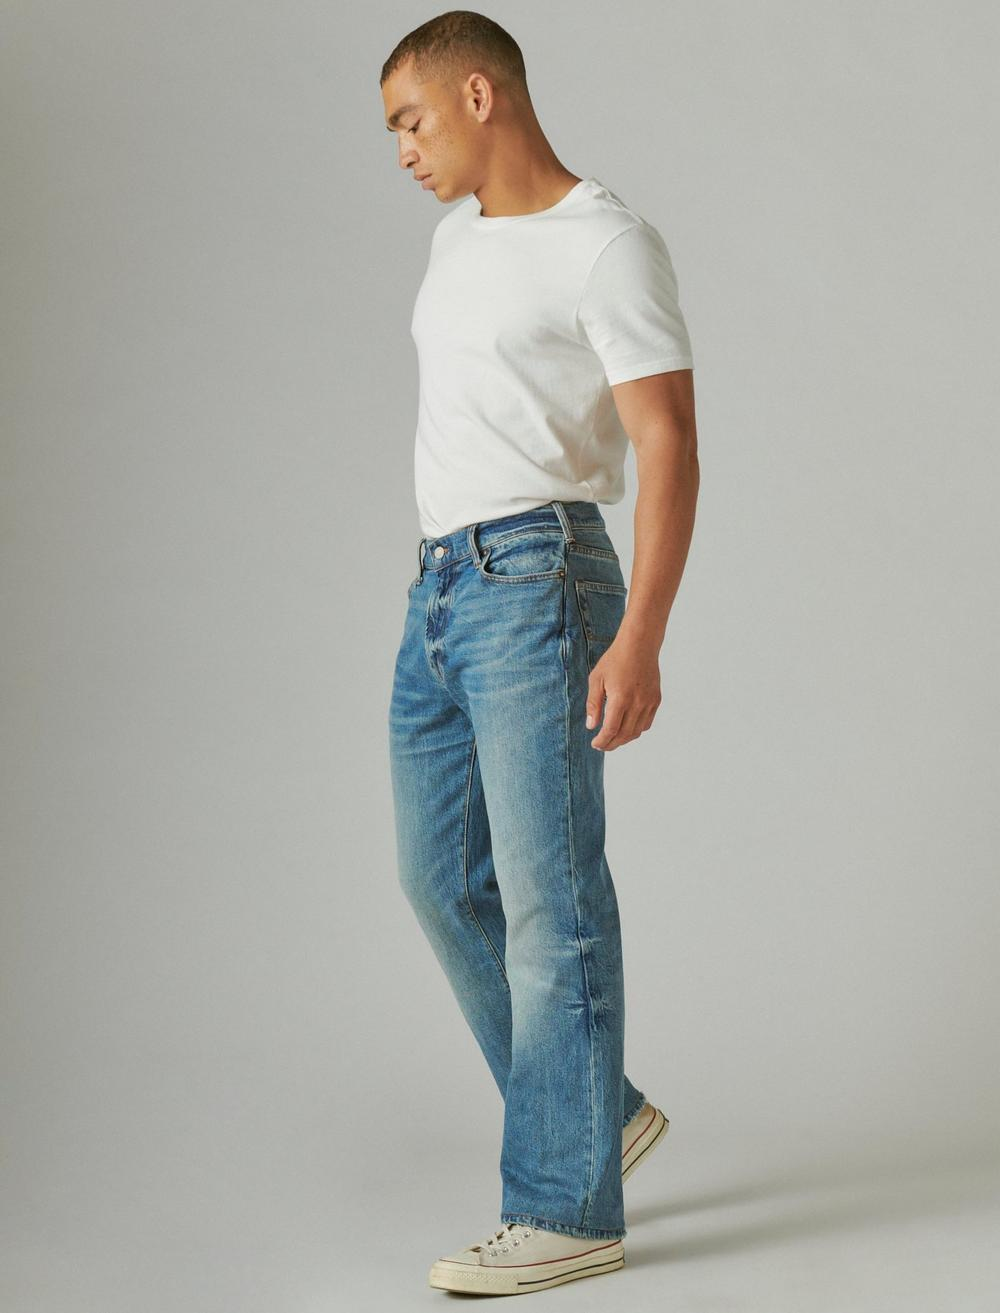 EASY RIDER BOOTCUT JEAN, image 2